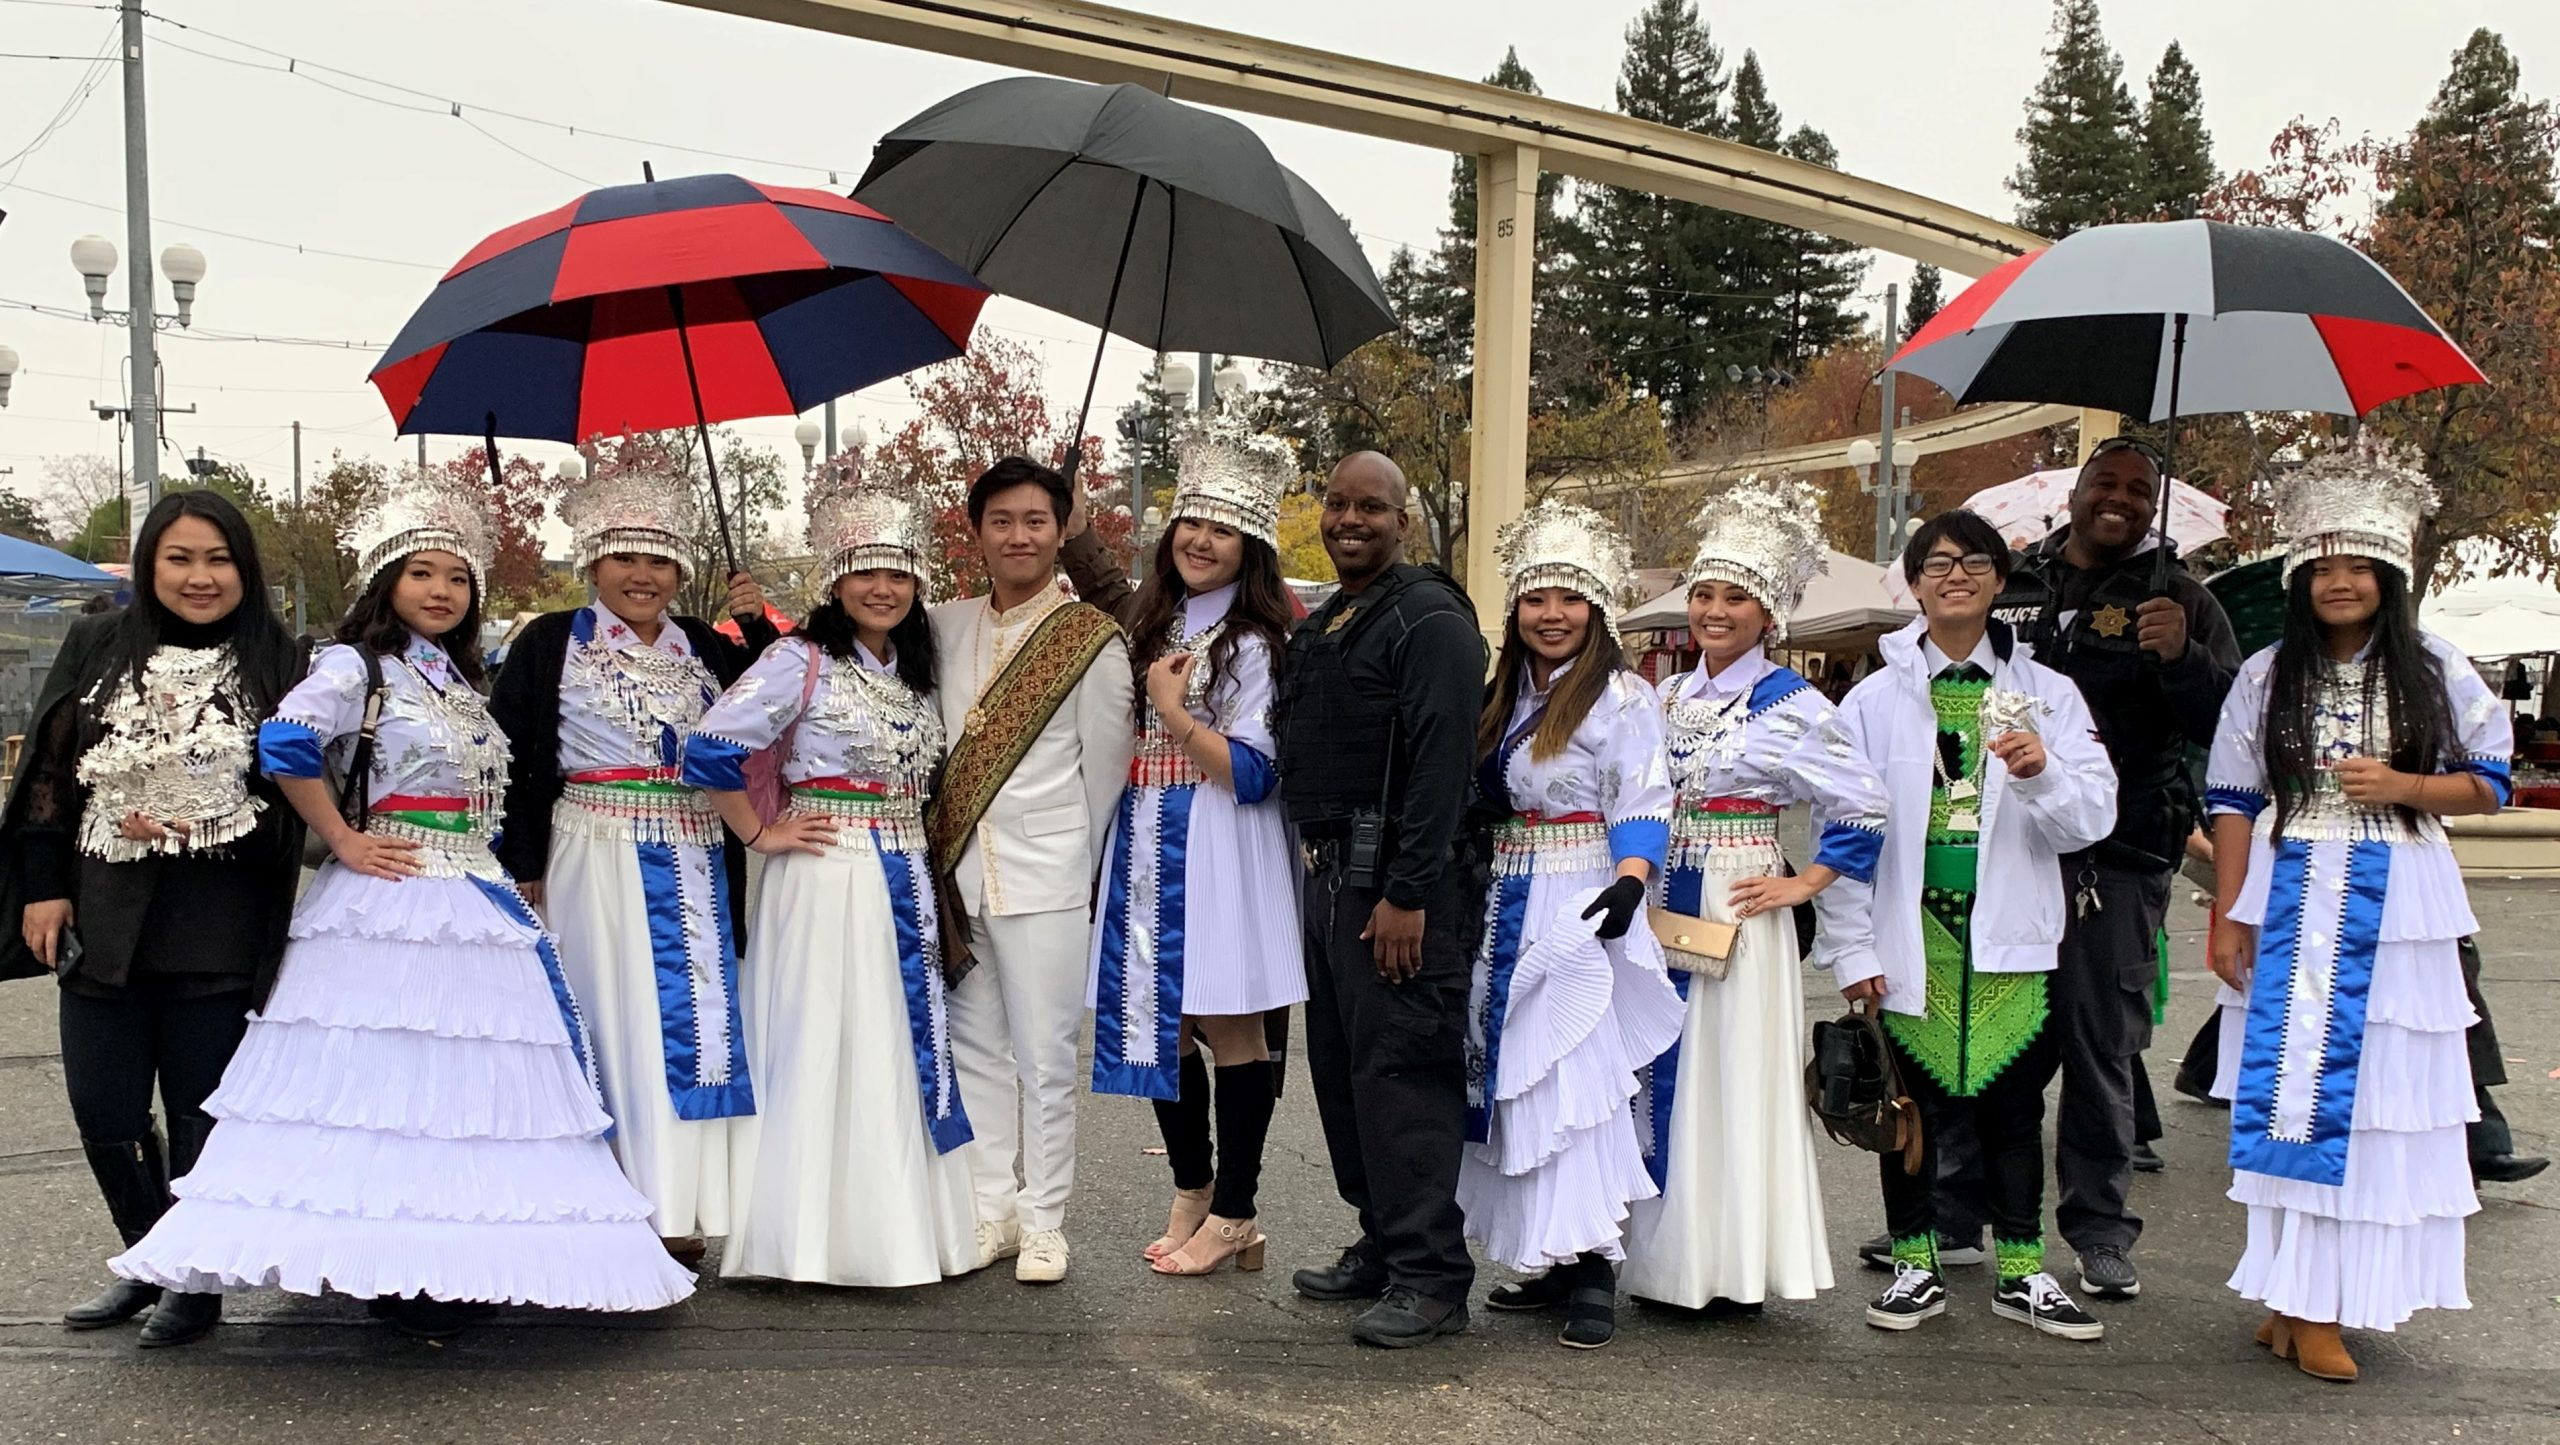 Two officers stand with Hmong women in traditional dresses.